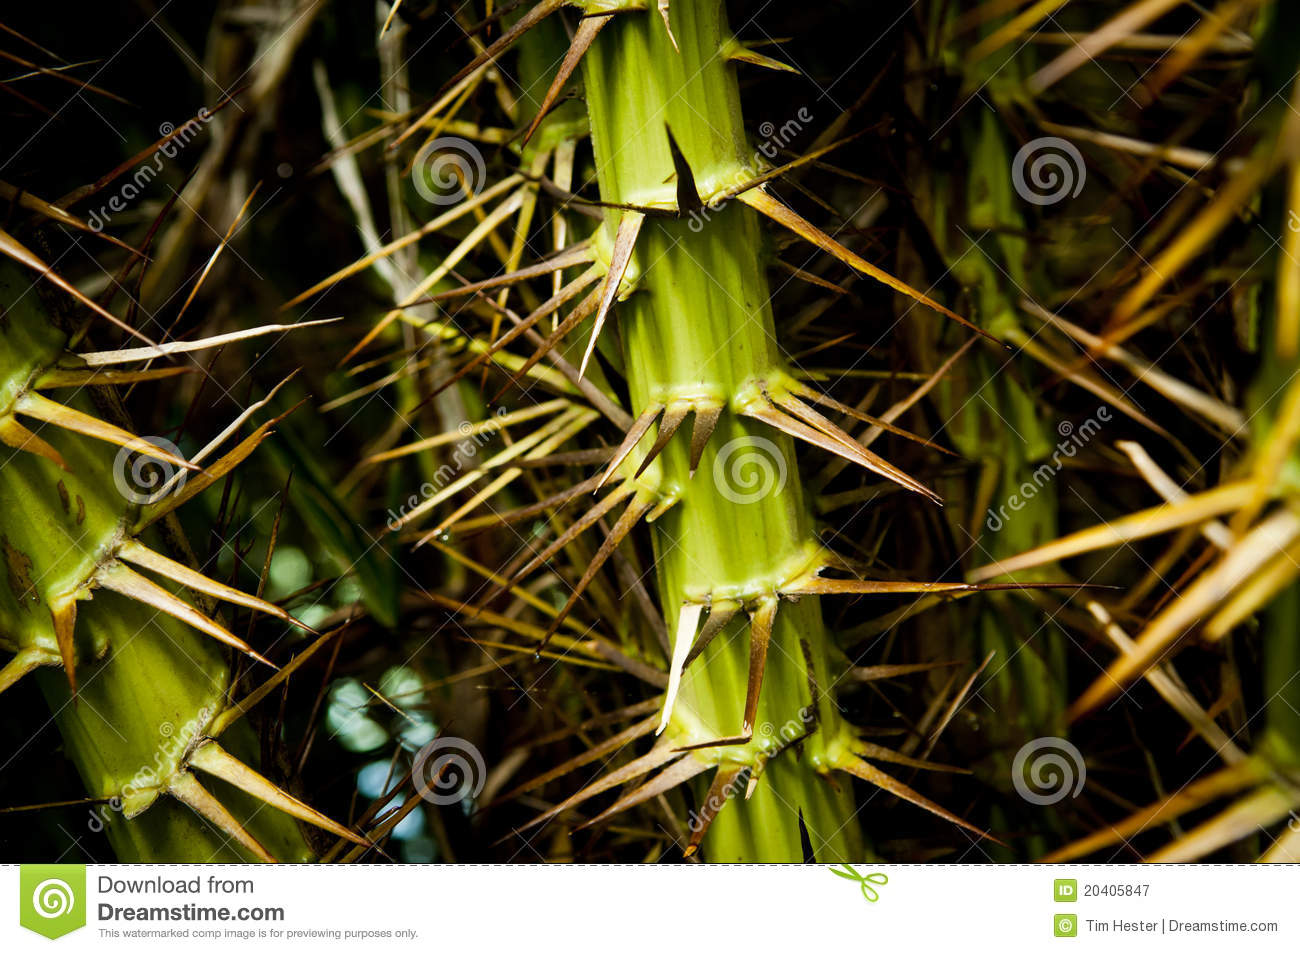 Jungle Thorns Spikes Royalty Free Stock Photography